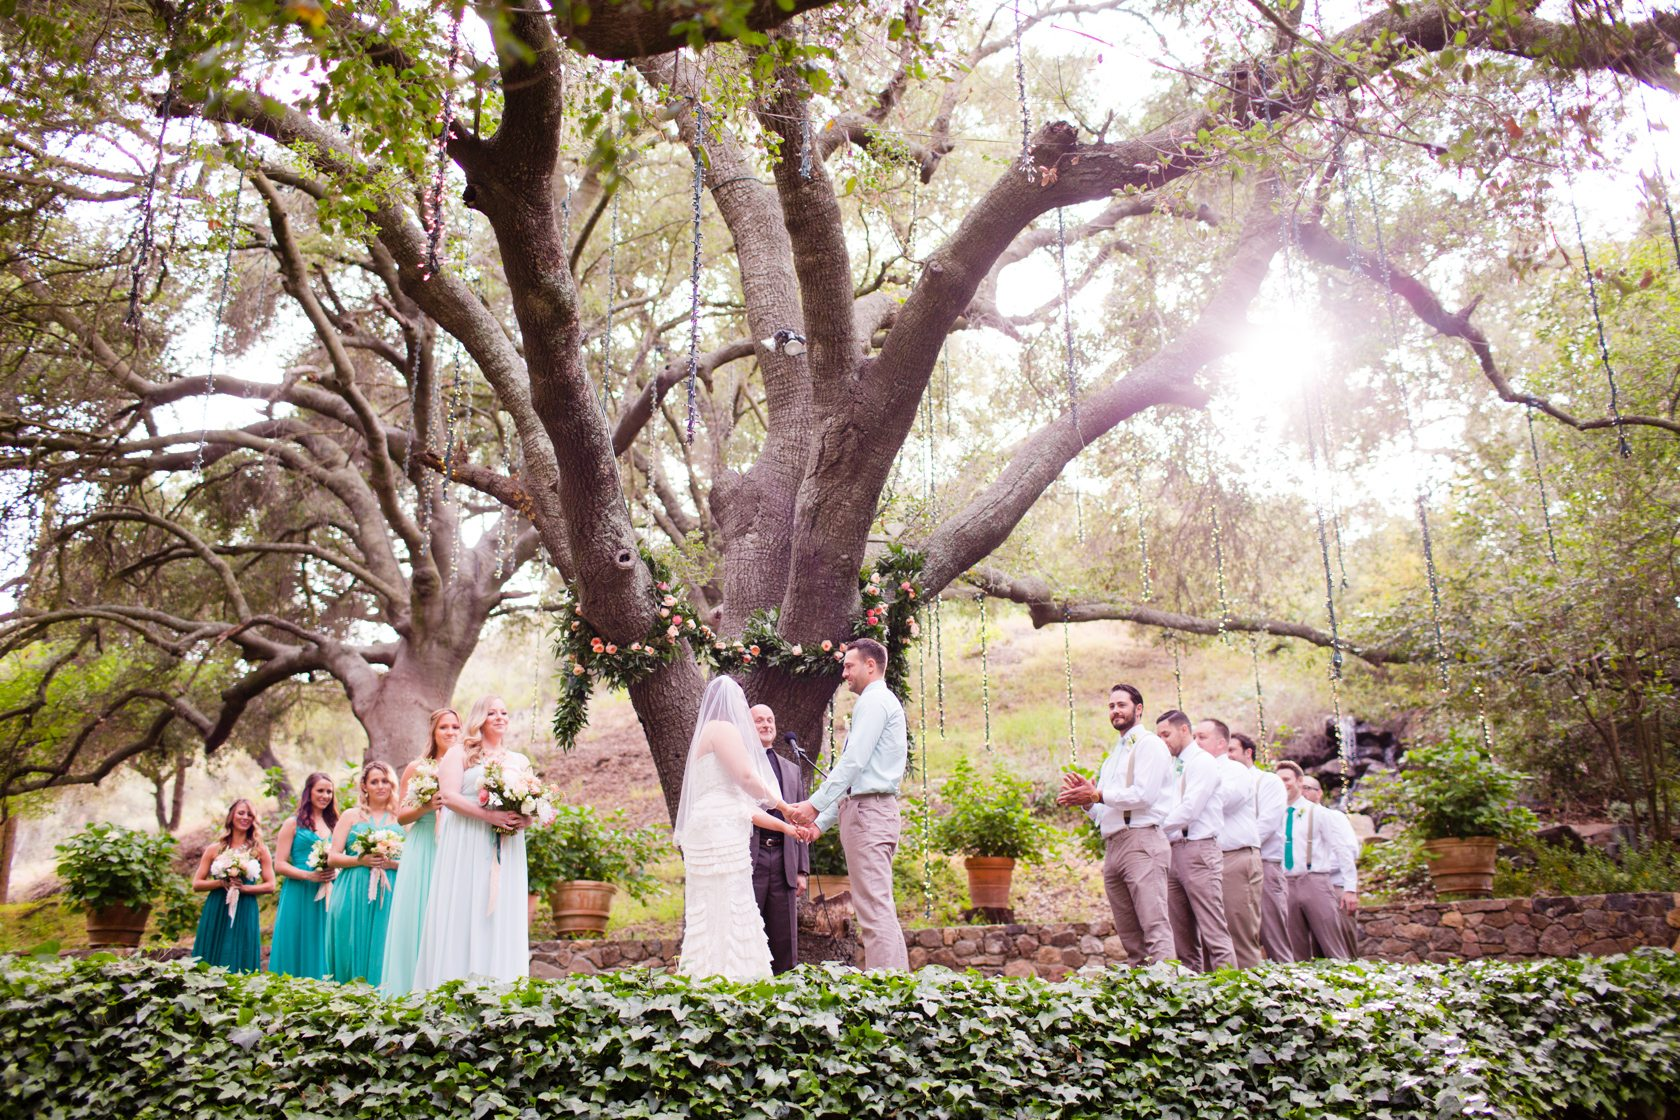 The_Printed_Palette_Wedding_at_Calamigos_Ranch_057.jpg